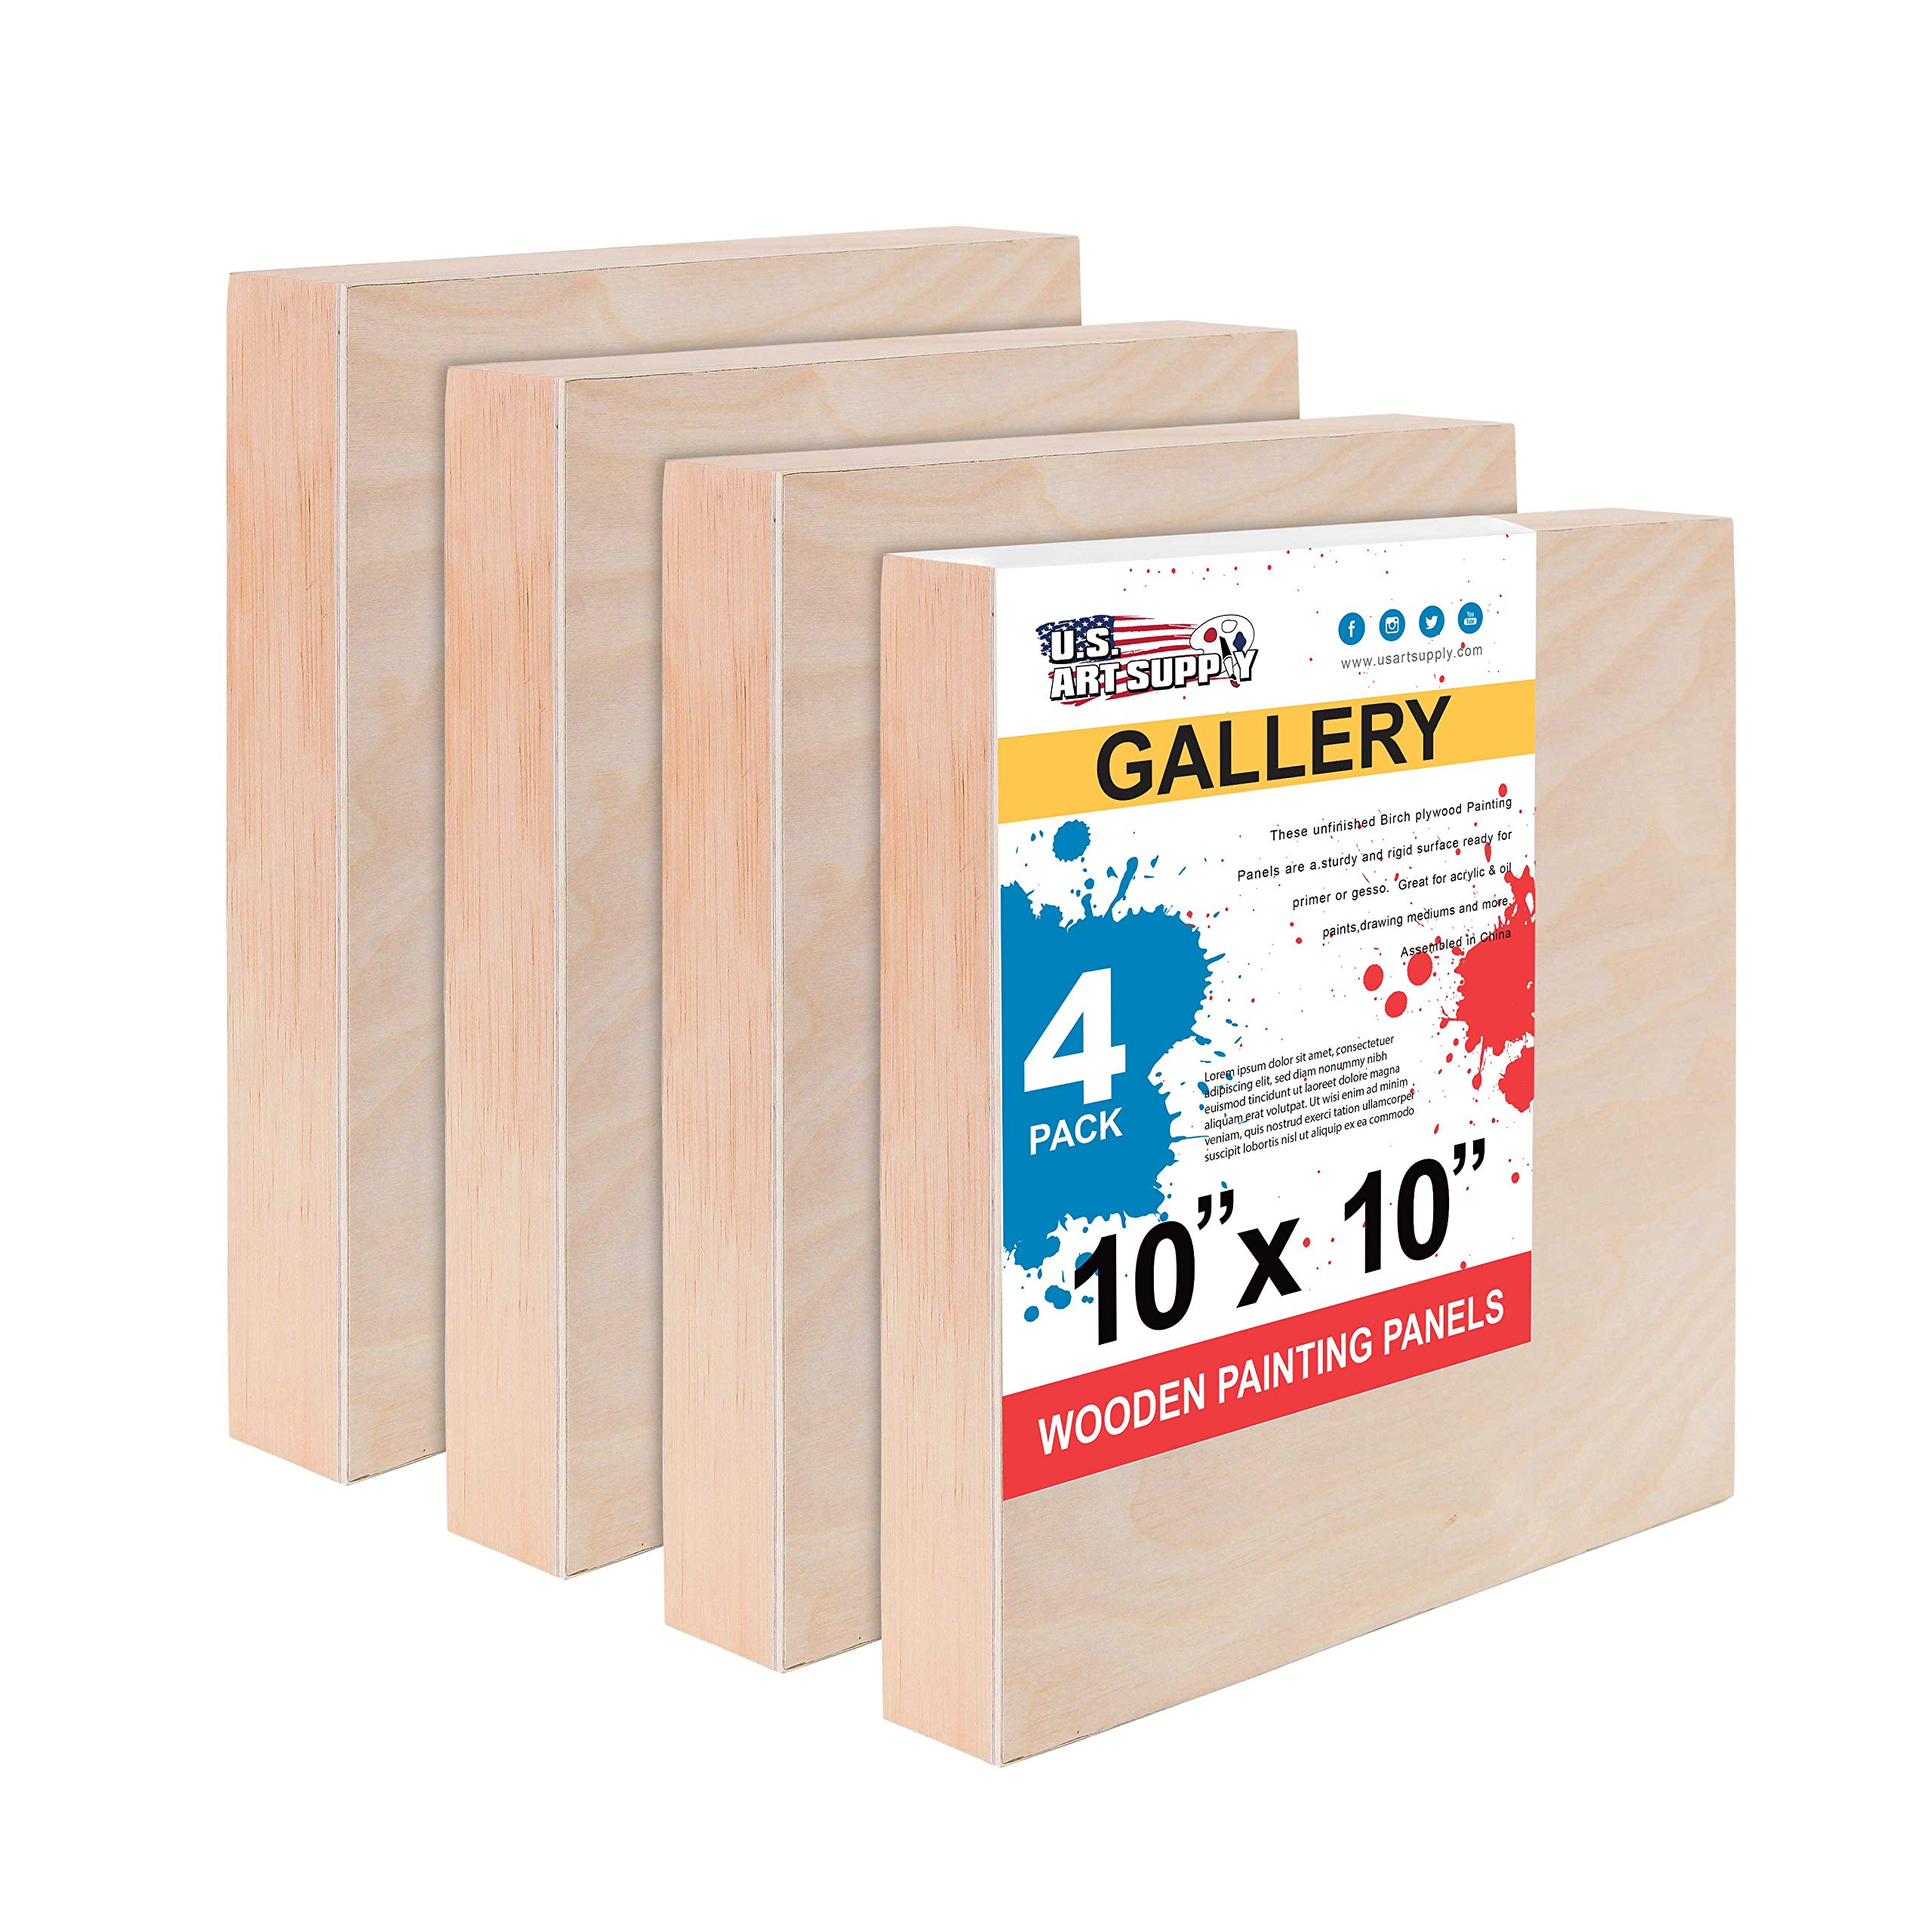 """U.S. Art Supply 10"""" x 10"""" Birch Wood Paint Pouring Panel Boards, Gallery 1-1/2"""" Deep Cradle (Pack of 4) - Artist Depth Wooden Wall Canvases - Painting Mixed-Media Craft, Acrylic, Oil, Encaustic"""